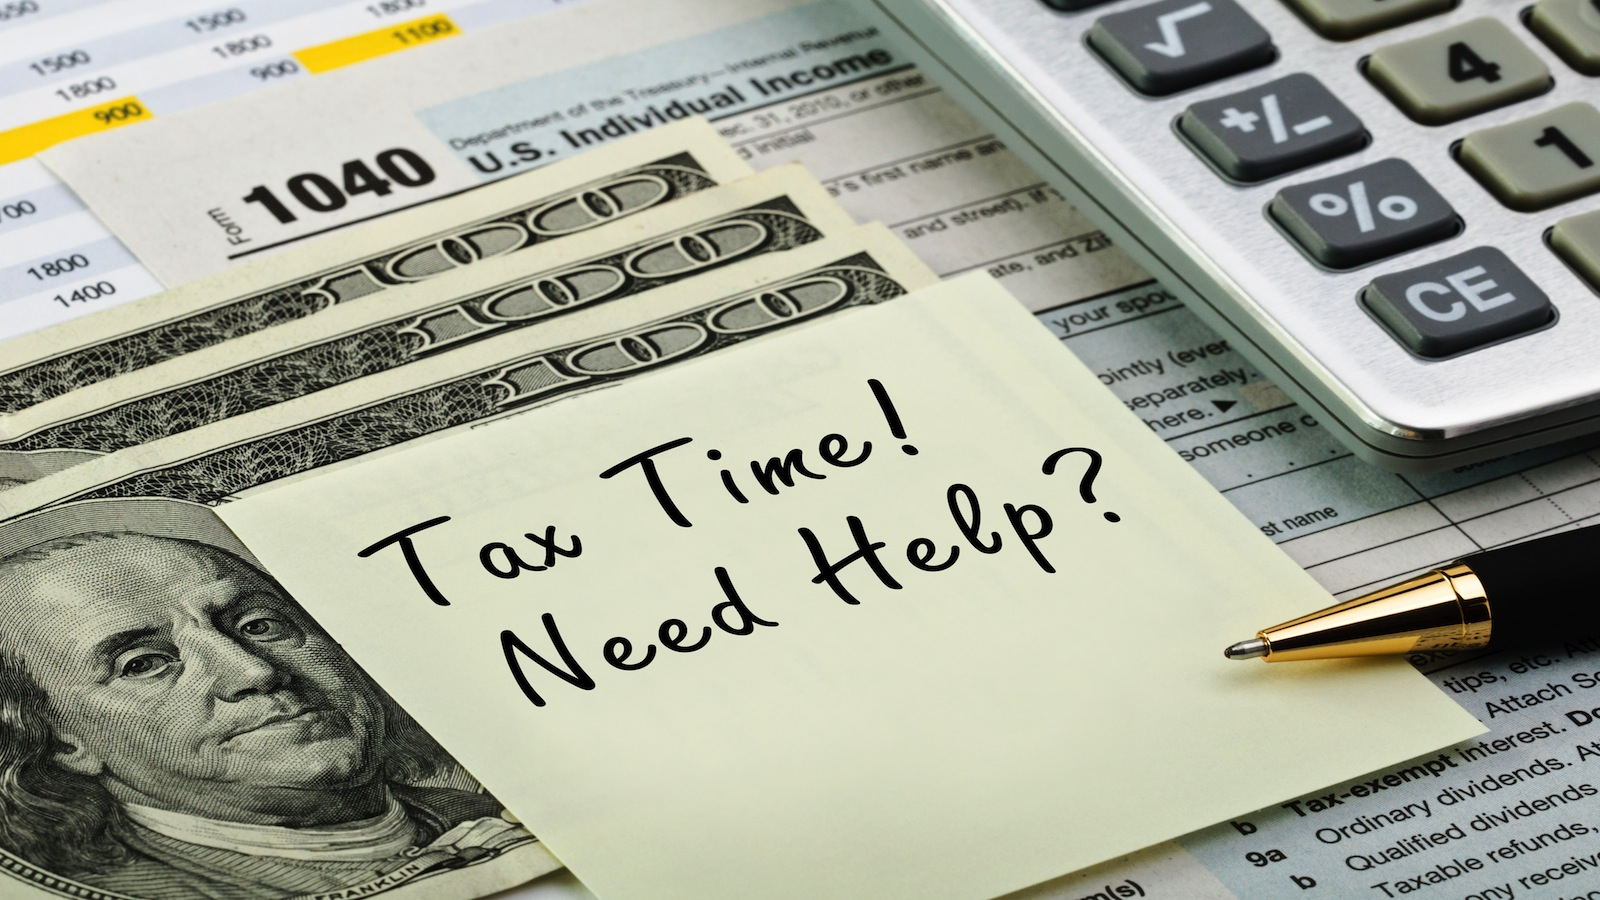 image of tax assistance note